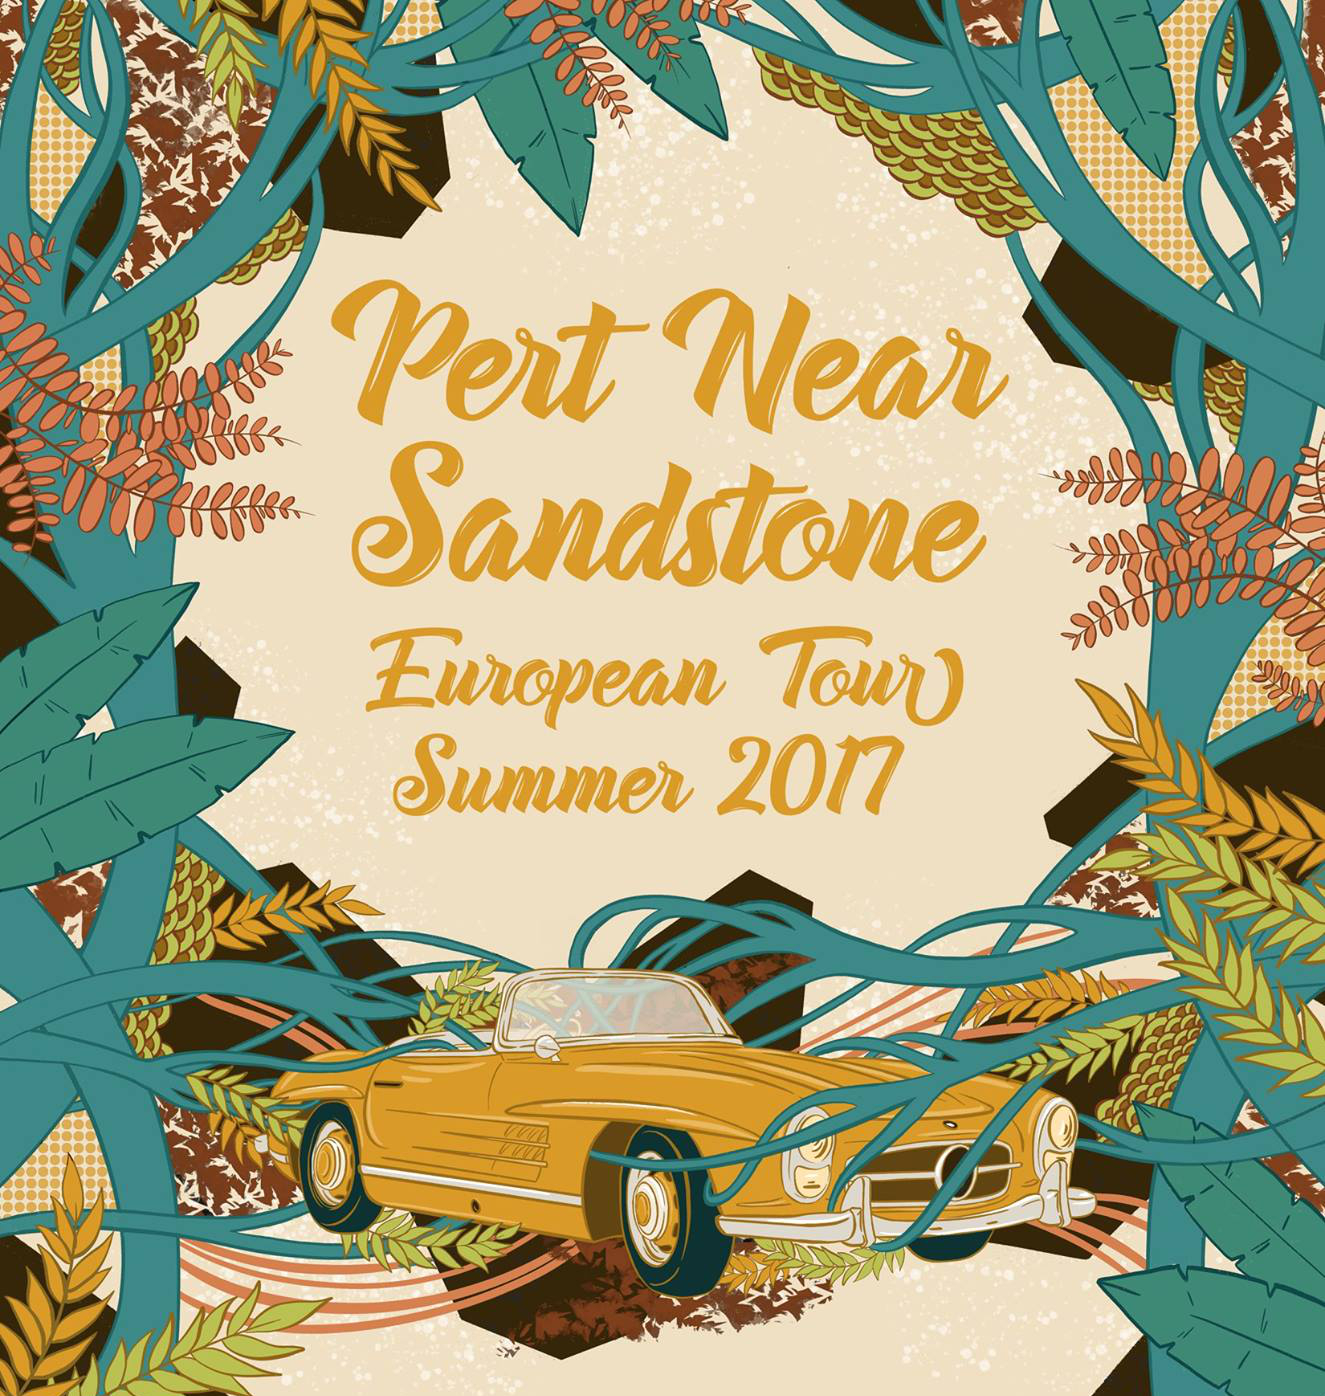 First European tour for Pert Near Sandstone starts this week